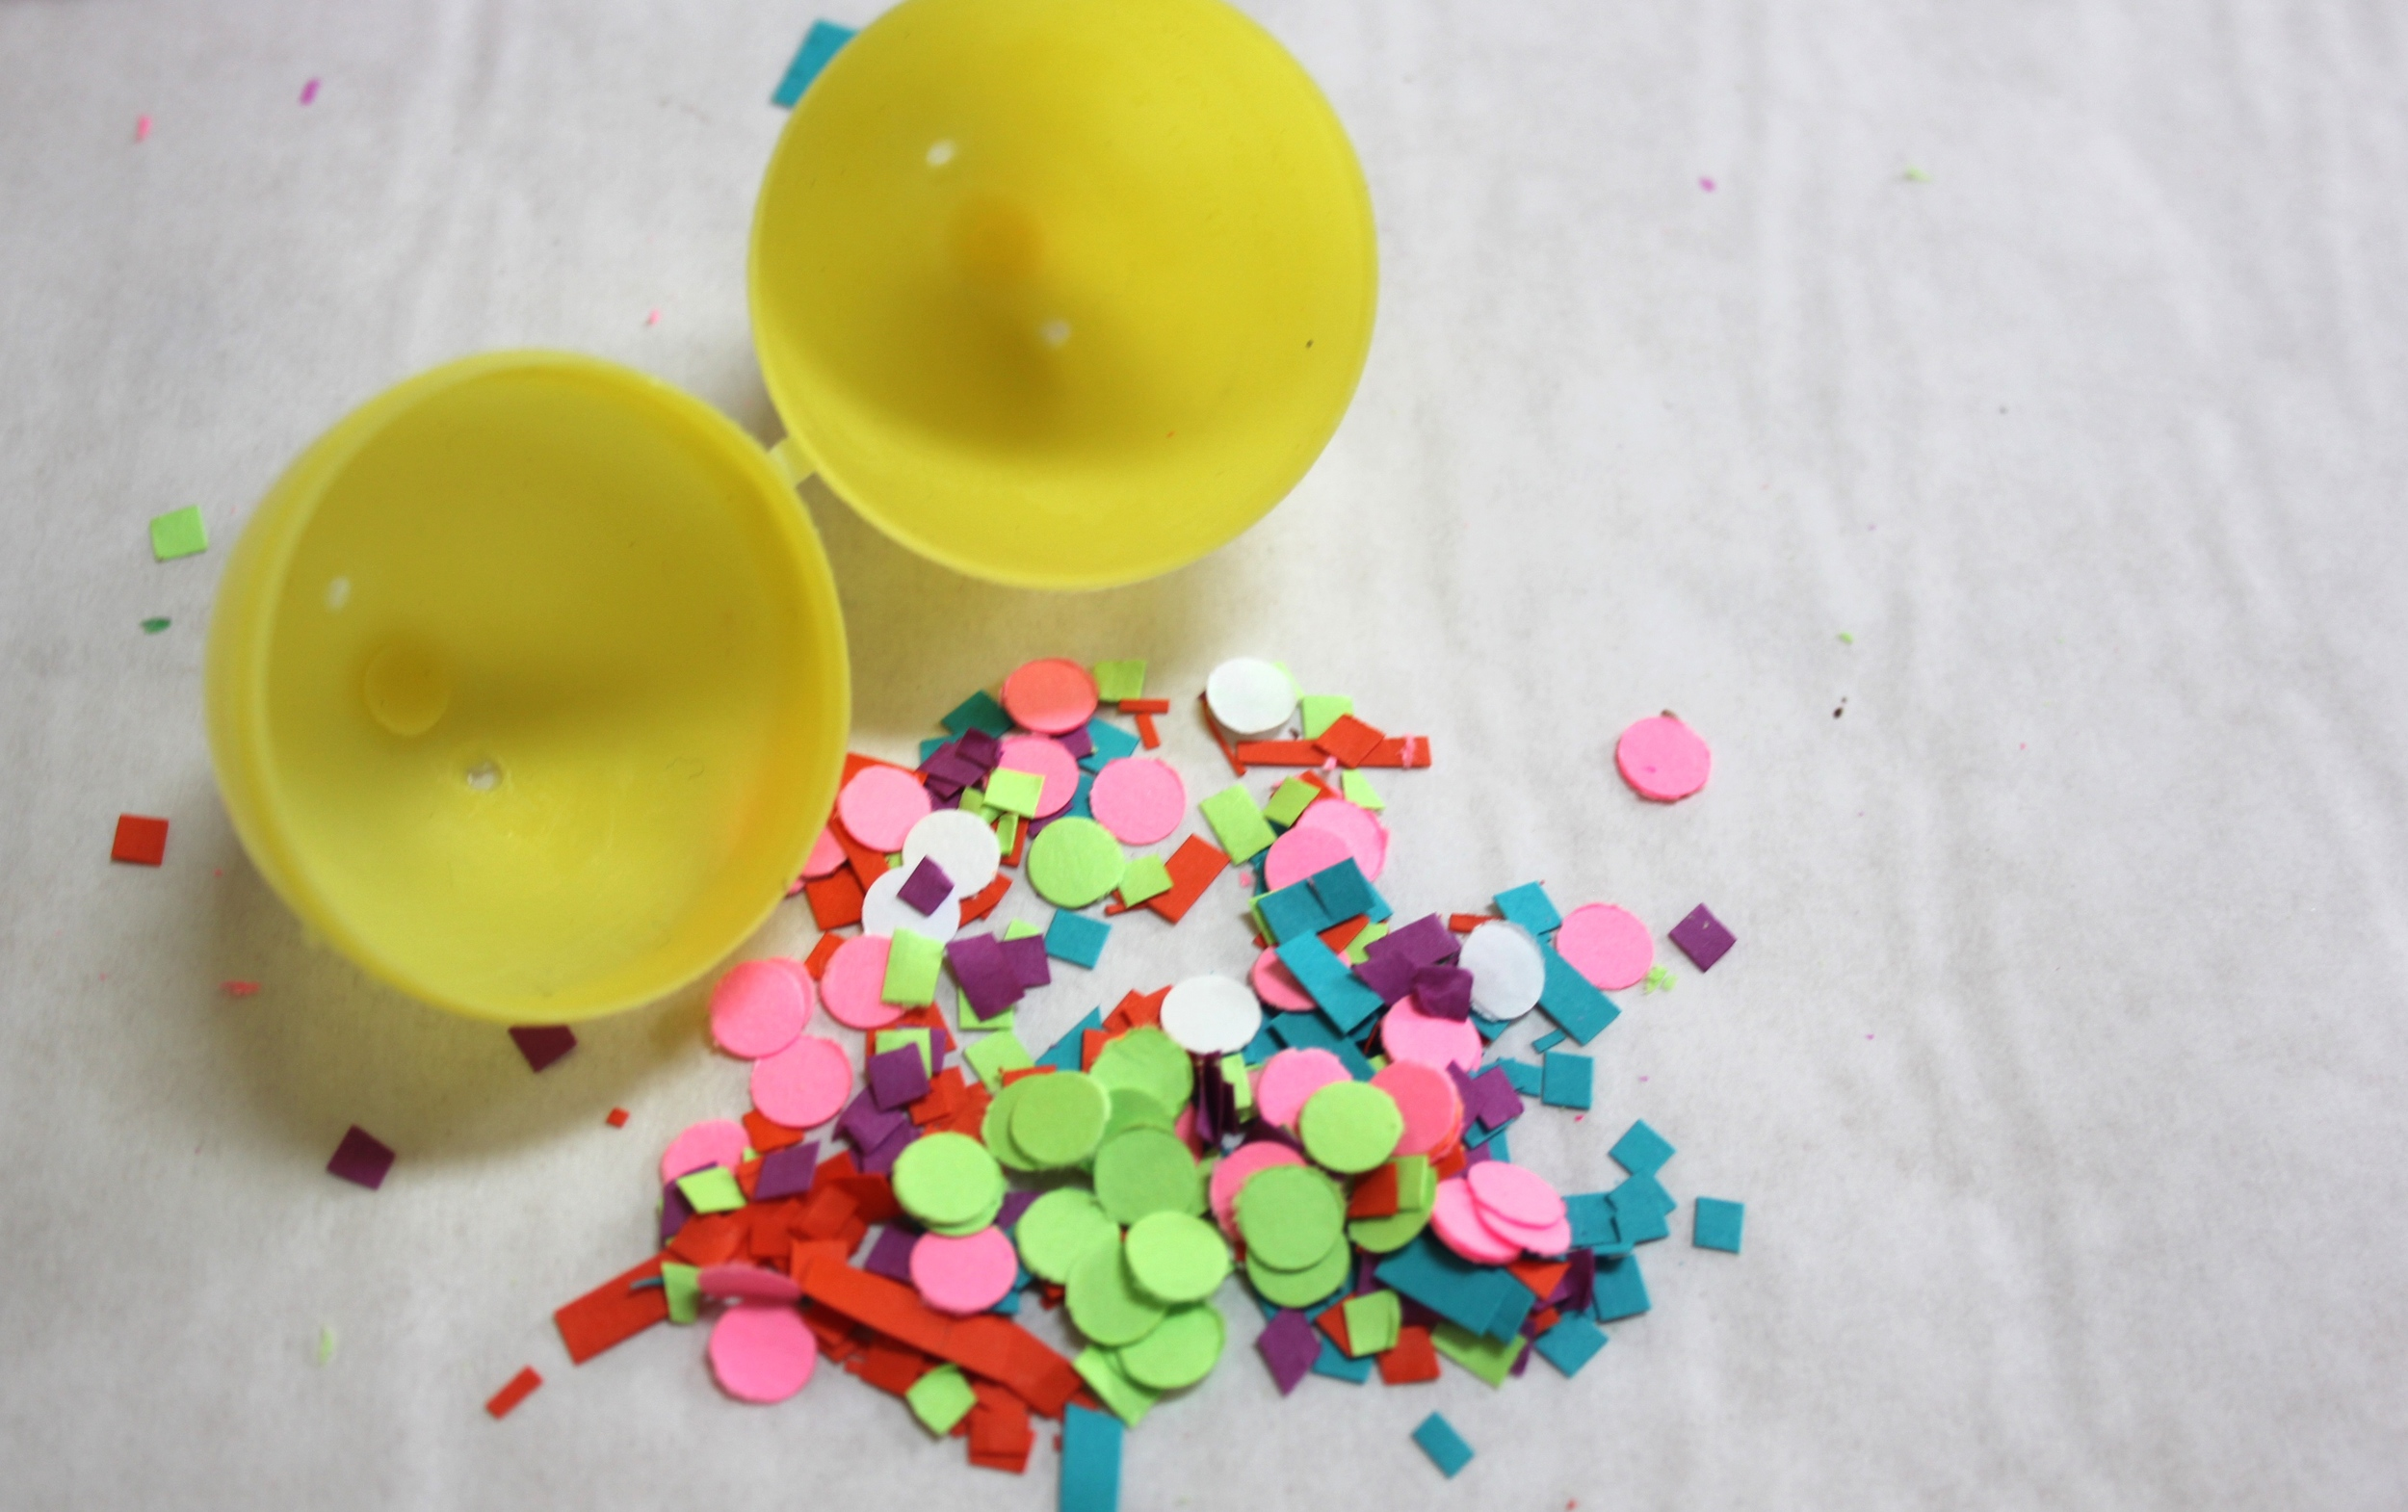 Fill leftover eggs with confetti made with a hole punch and scissors (those fringe scissors can make tiny square confetti too). Put the confetti in the egg and tape it closed.